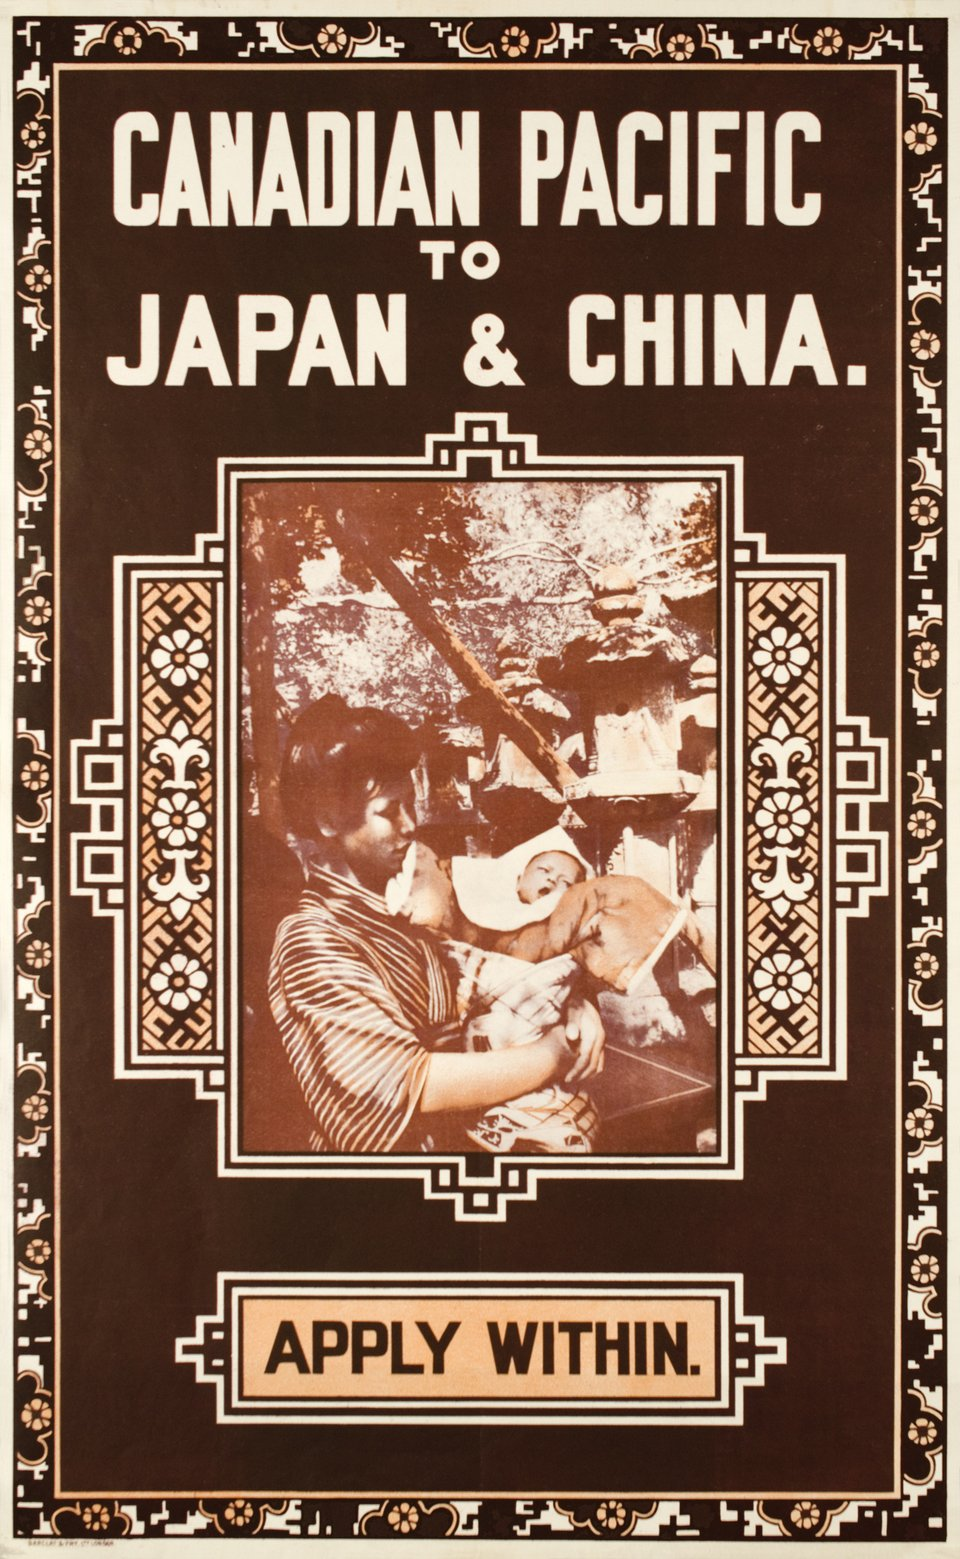 Canadian Pacific to Japan & China. – Affiche ancienne –  ANONYME – 1920